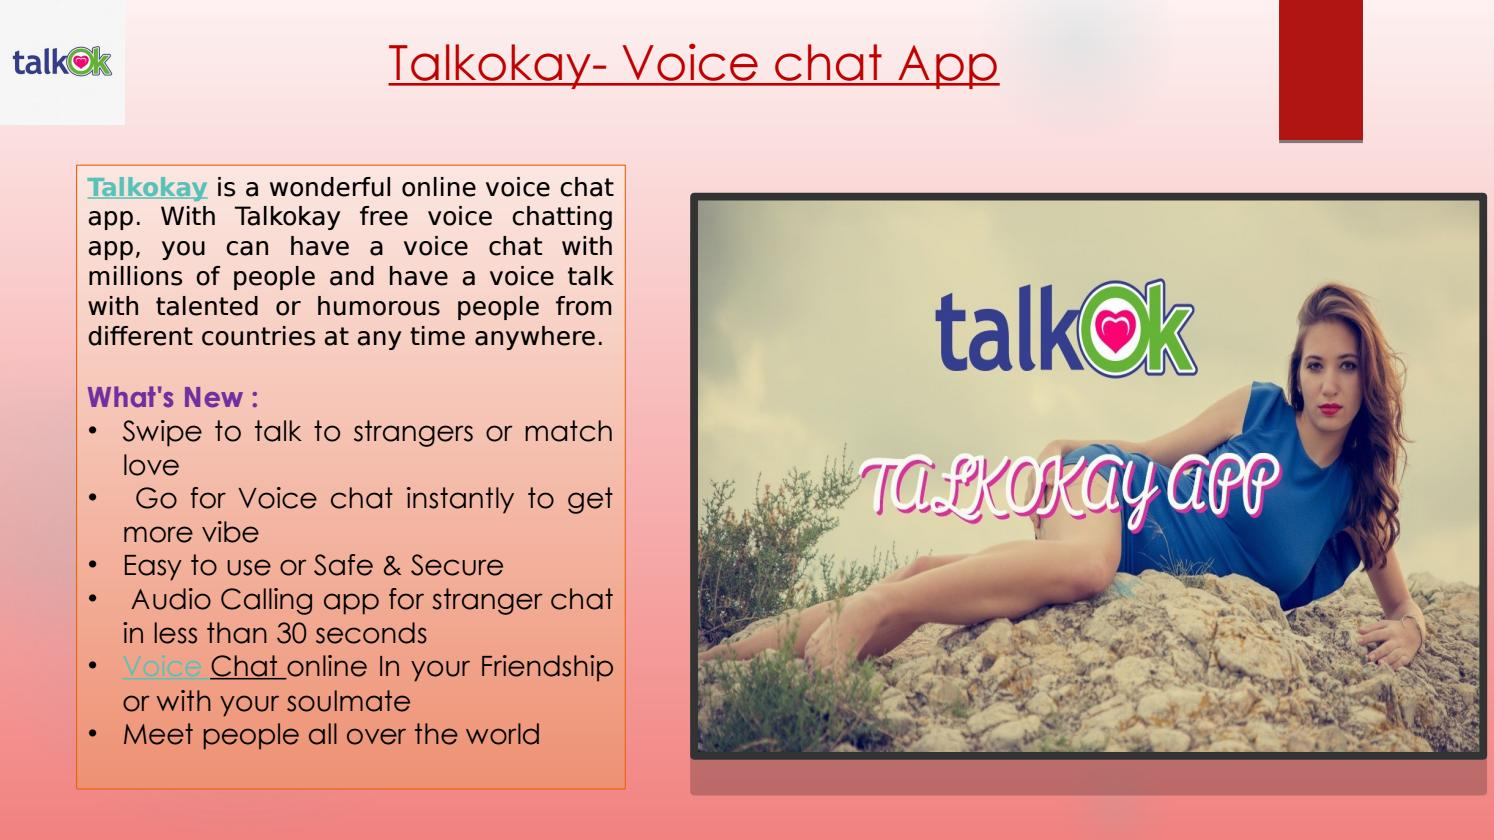 Strangers chat online voice Talk with